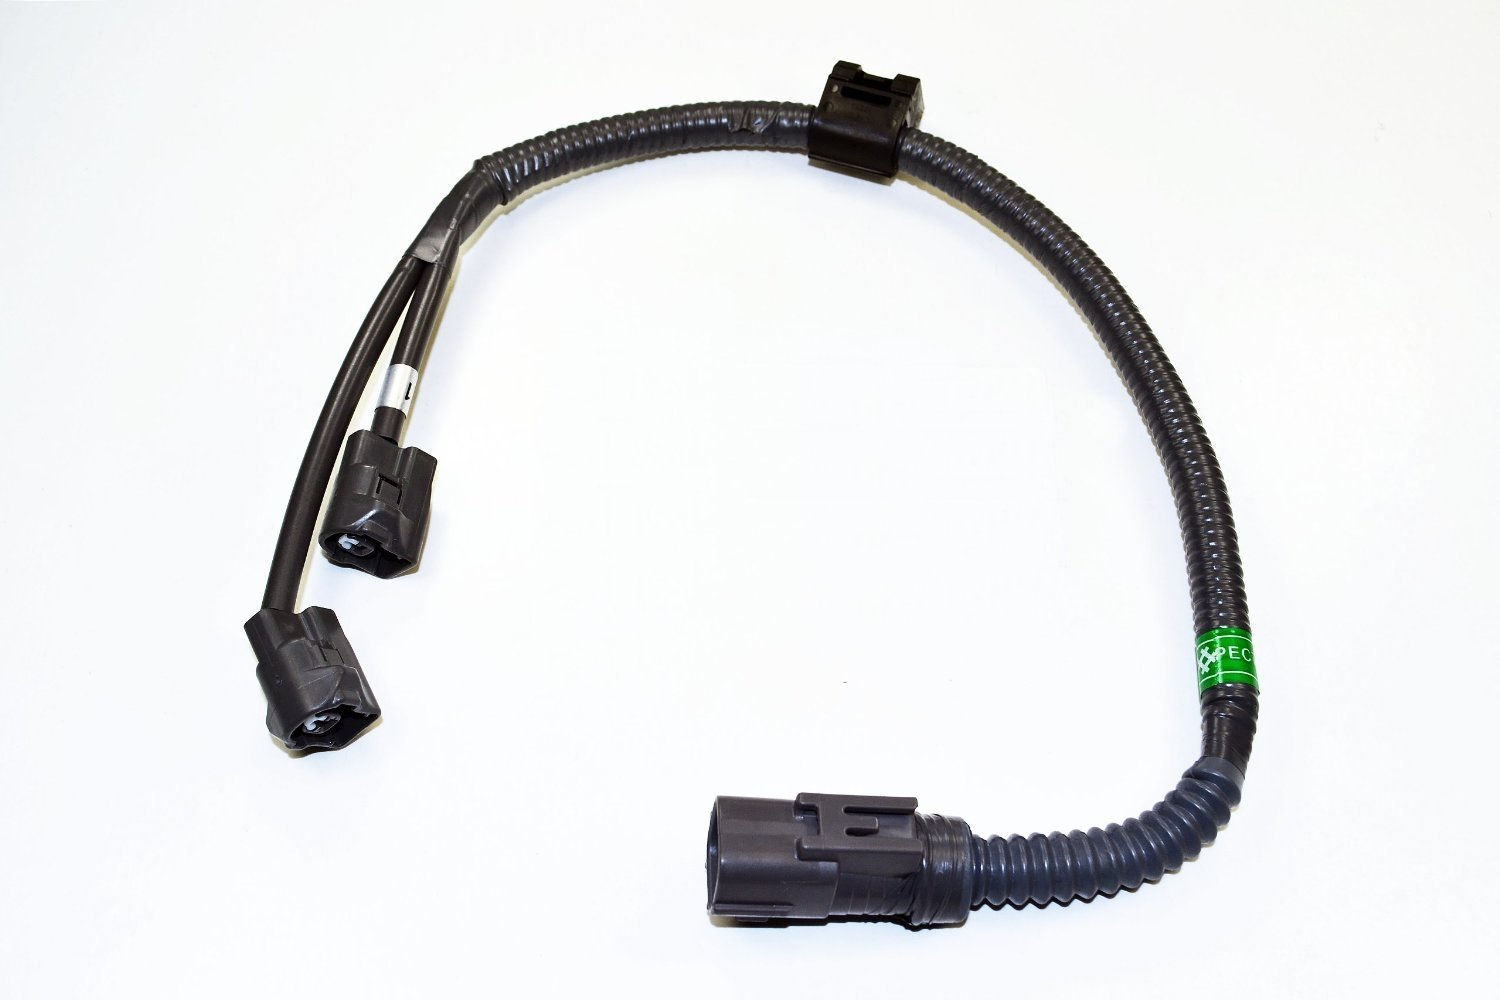 61RjBLHpw0L._SL1500_ amazon com genuine toyota lexus knock sensor harness 82219 07010 lexus es300 knock sensor wiring harness at webbmarketing.co